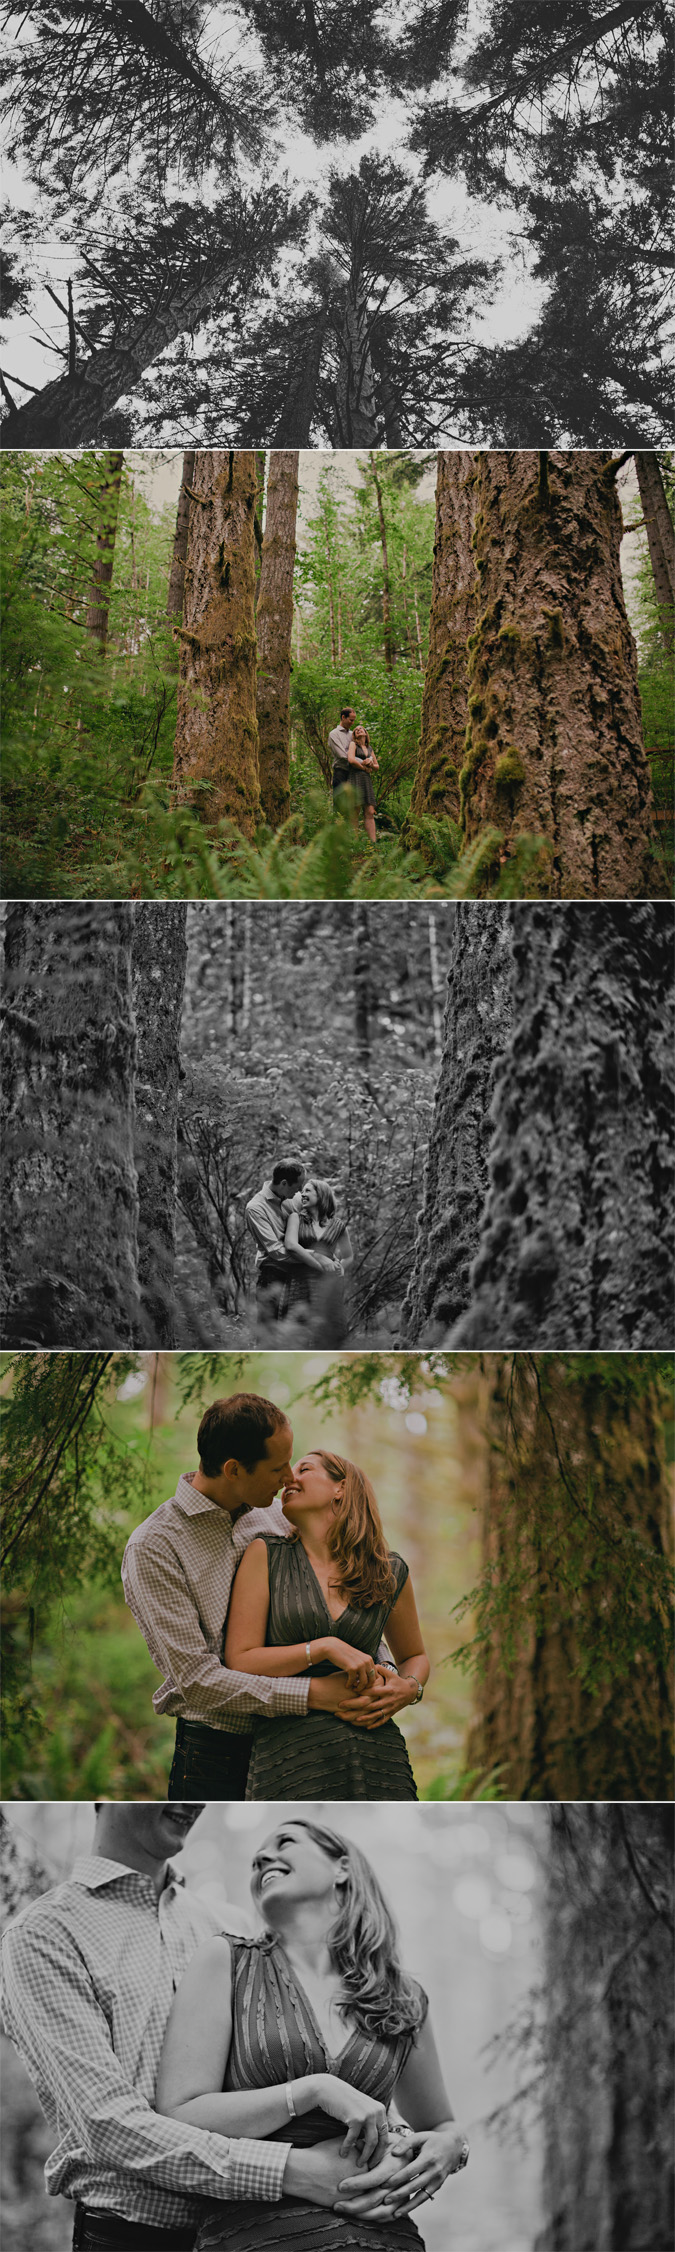 creative engagement photos of a couple in seal bay provincial park, comox, bc